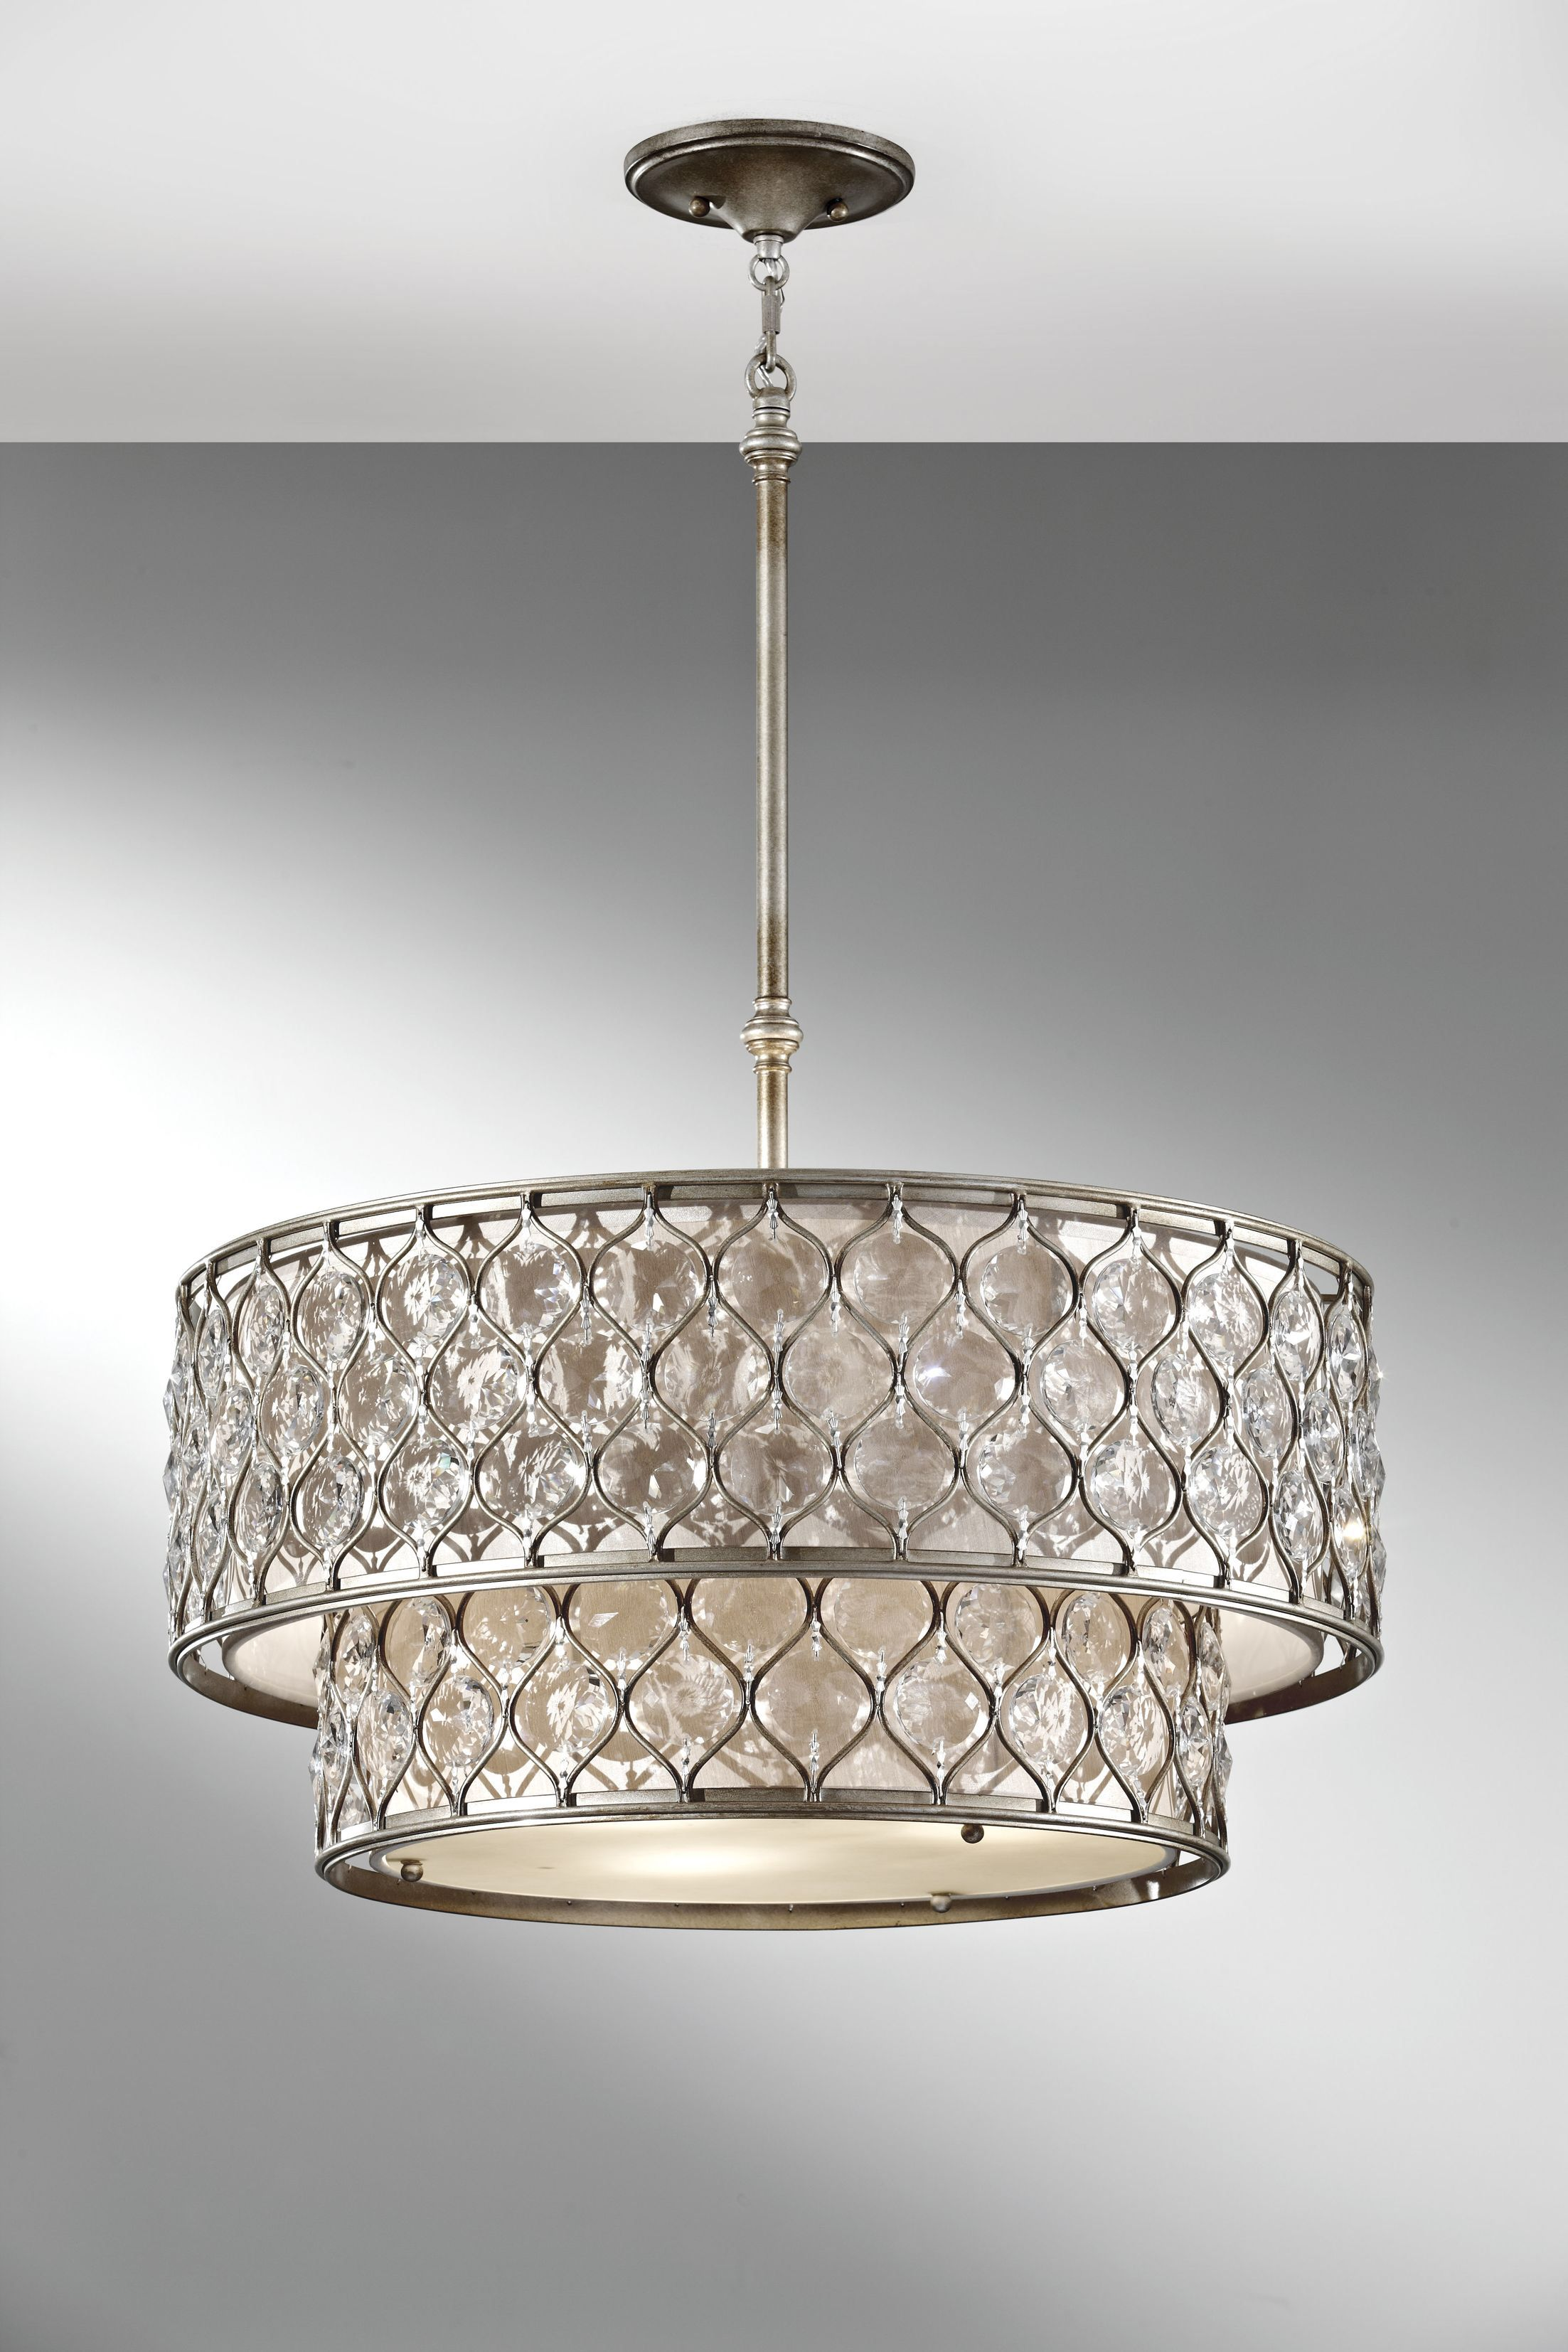 chandelier direct chandeliers island esl soros murray lighting light shipped feiss